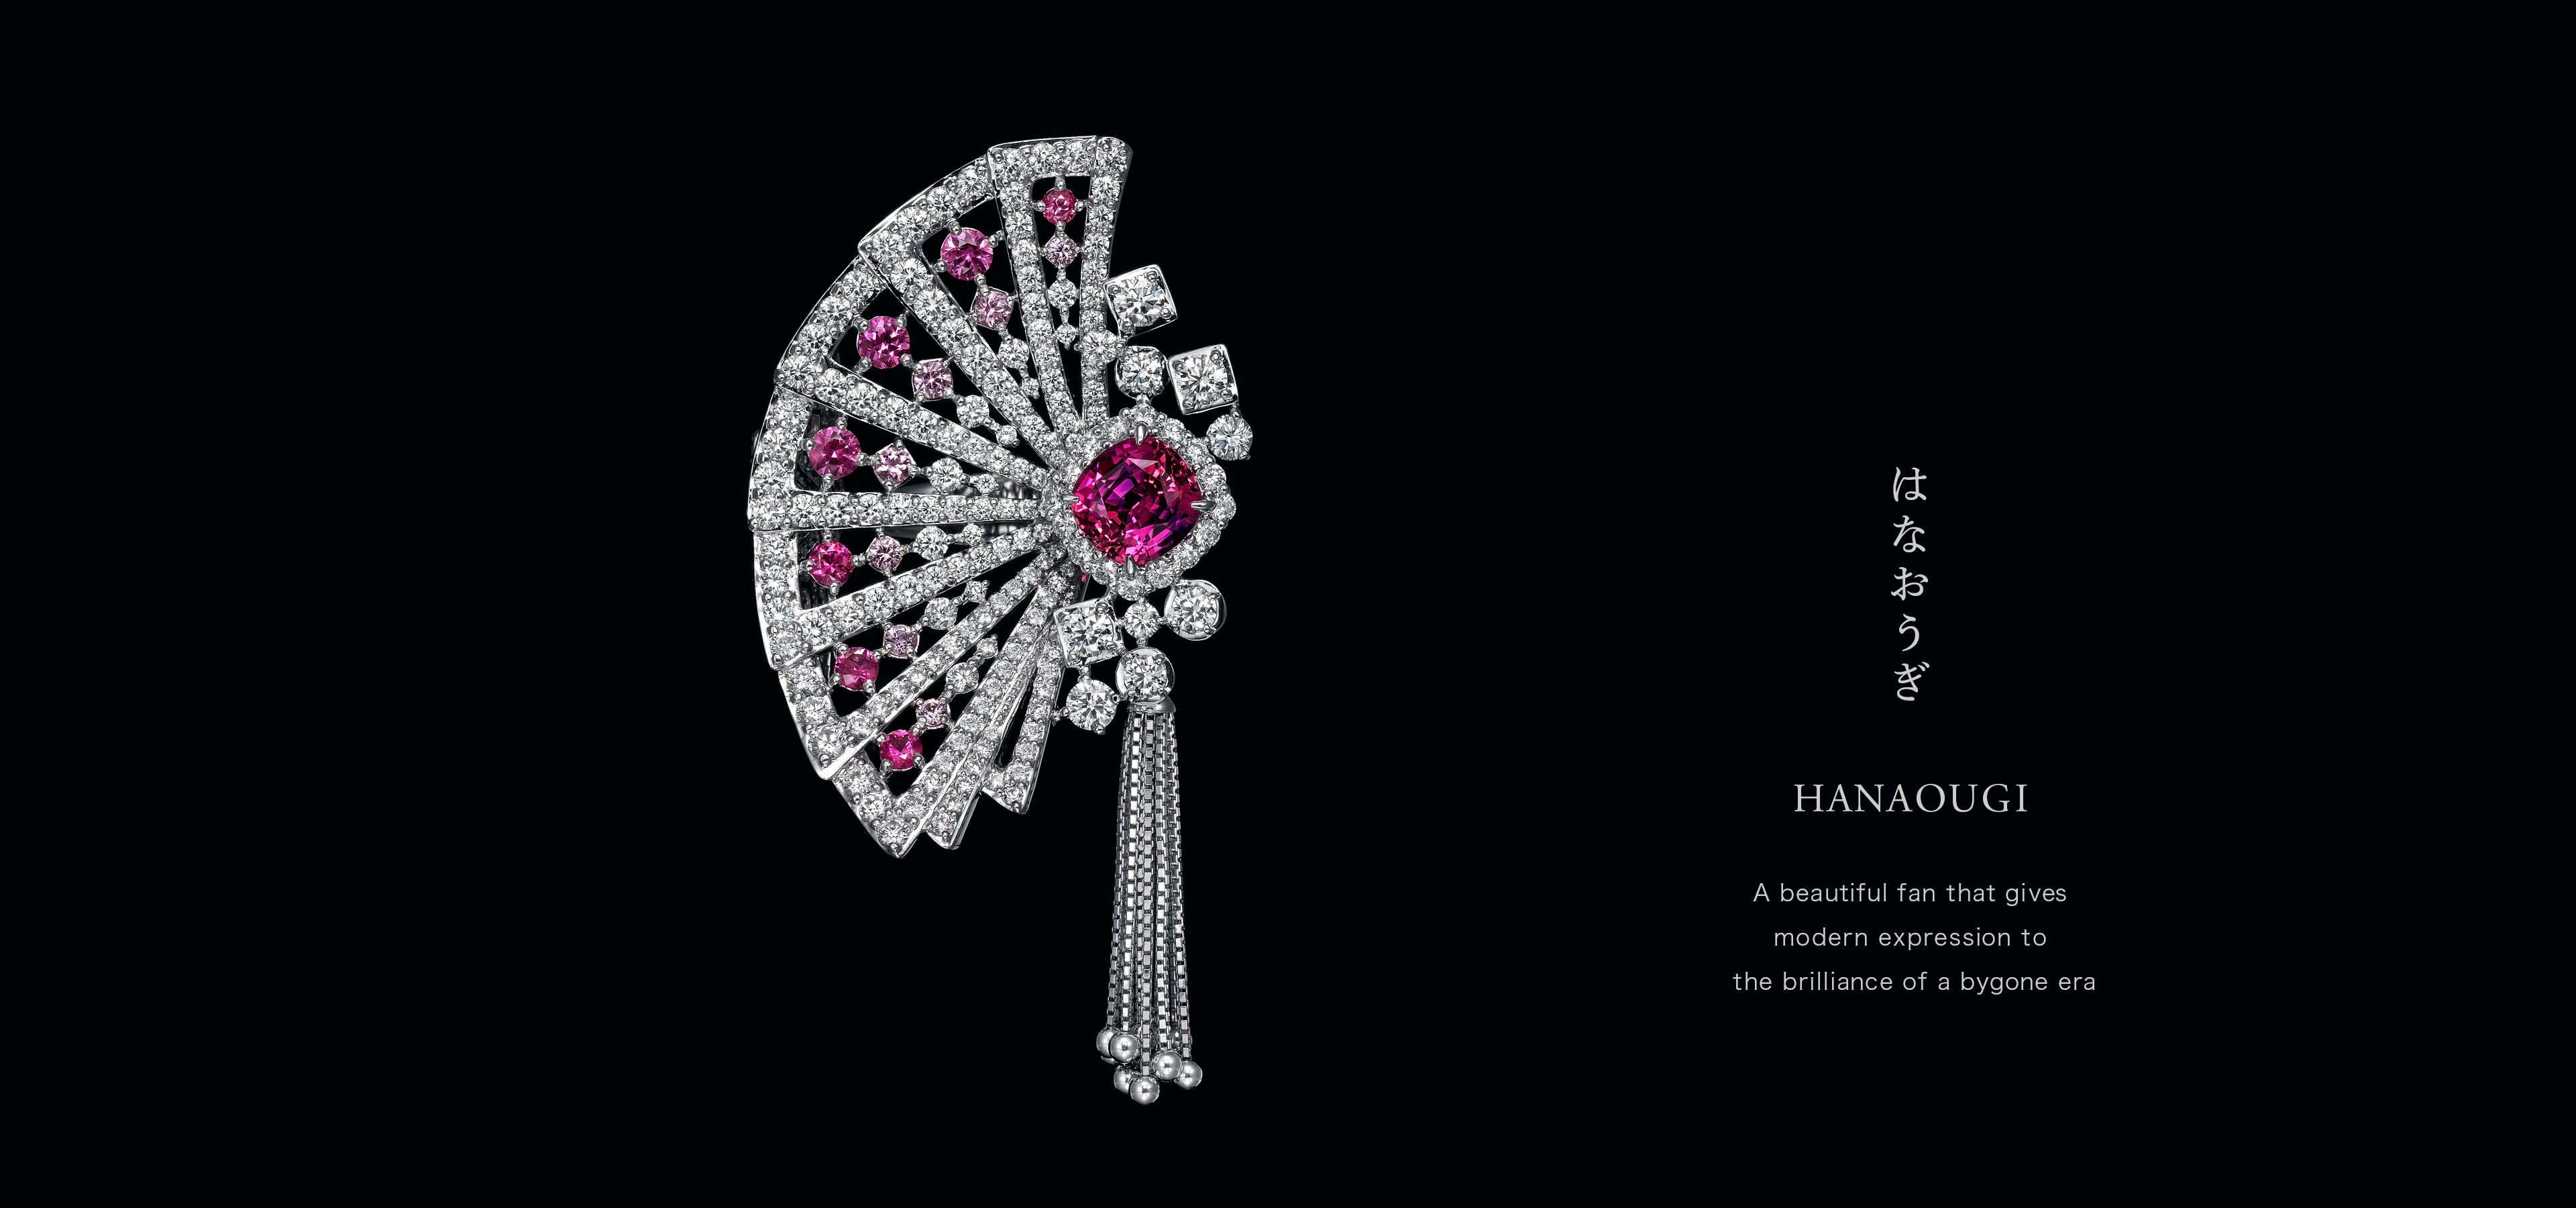 Hanaougi A beautiful fan that gives modern expression to the brilliance of a bygone era